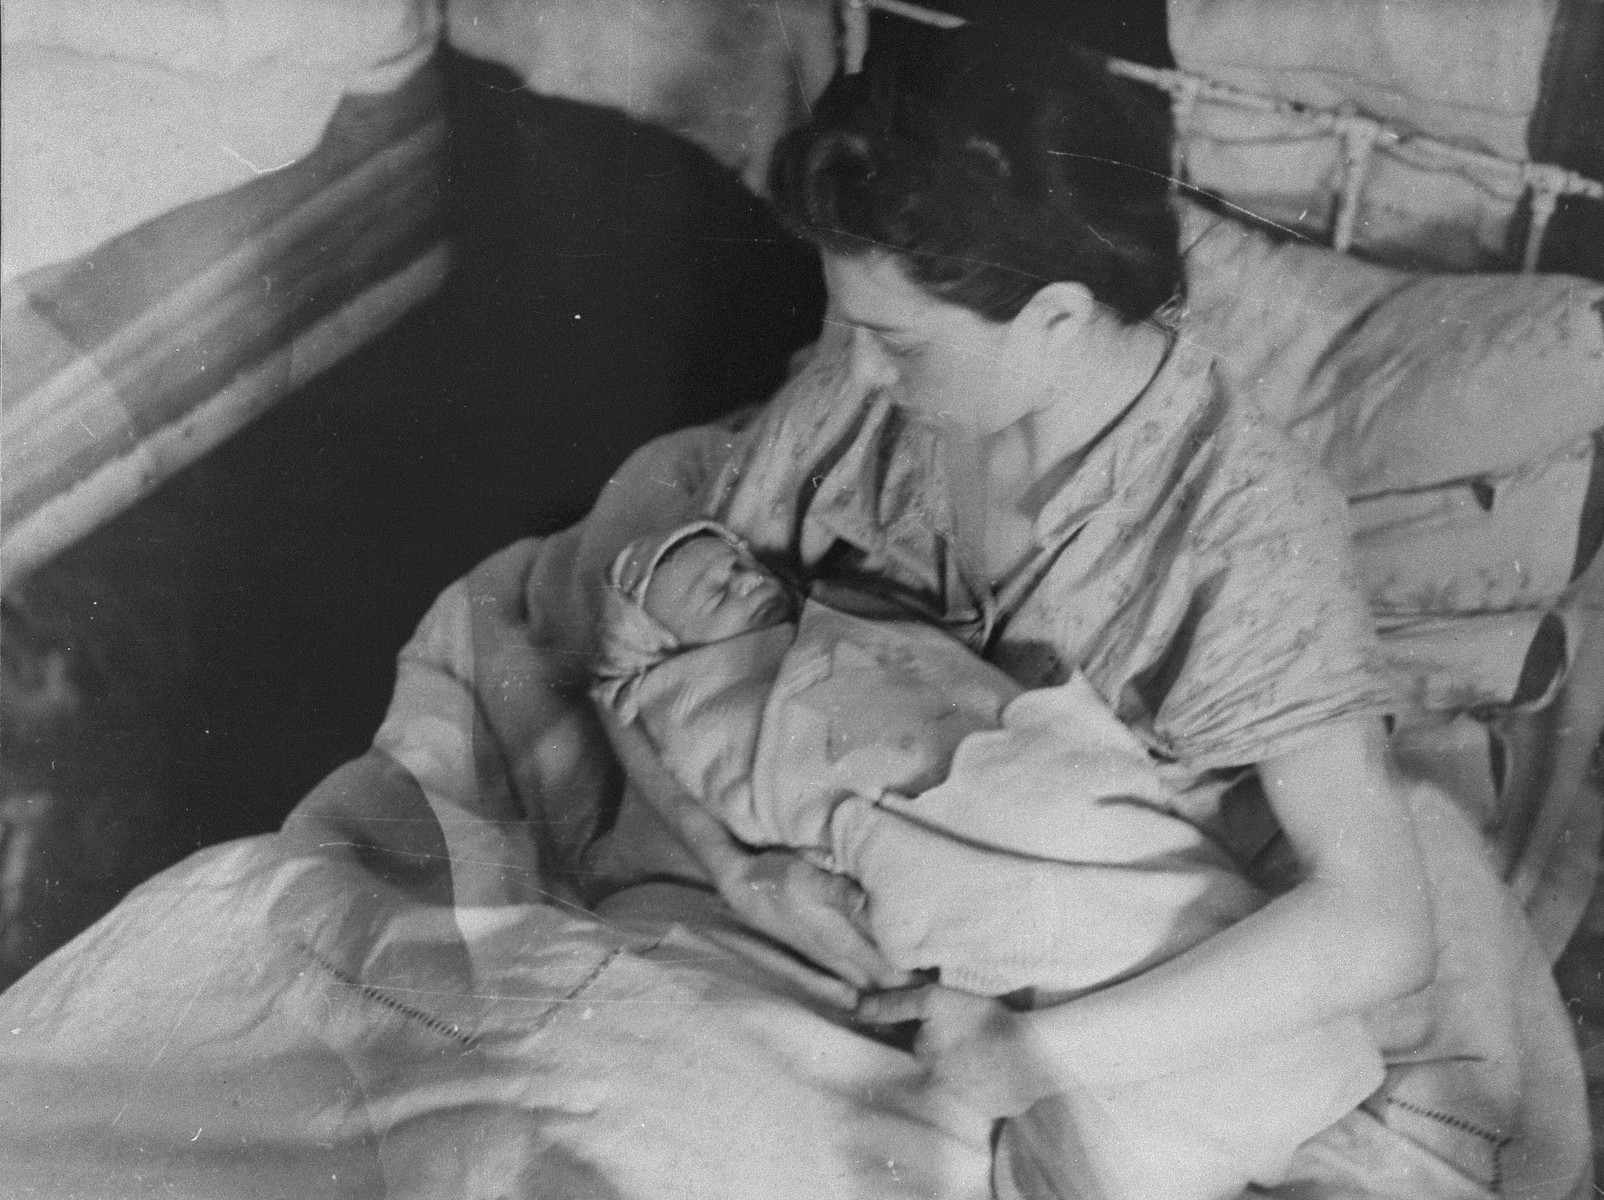 A mother cradles her new born baby in the Kovno ghetto hospital.  The child is swaddled in a blanket with a Star of David.